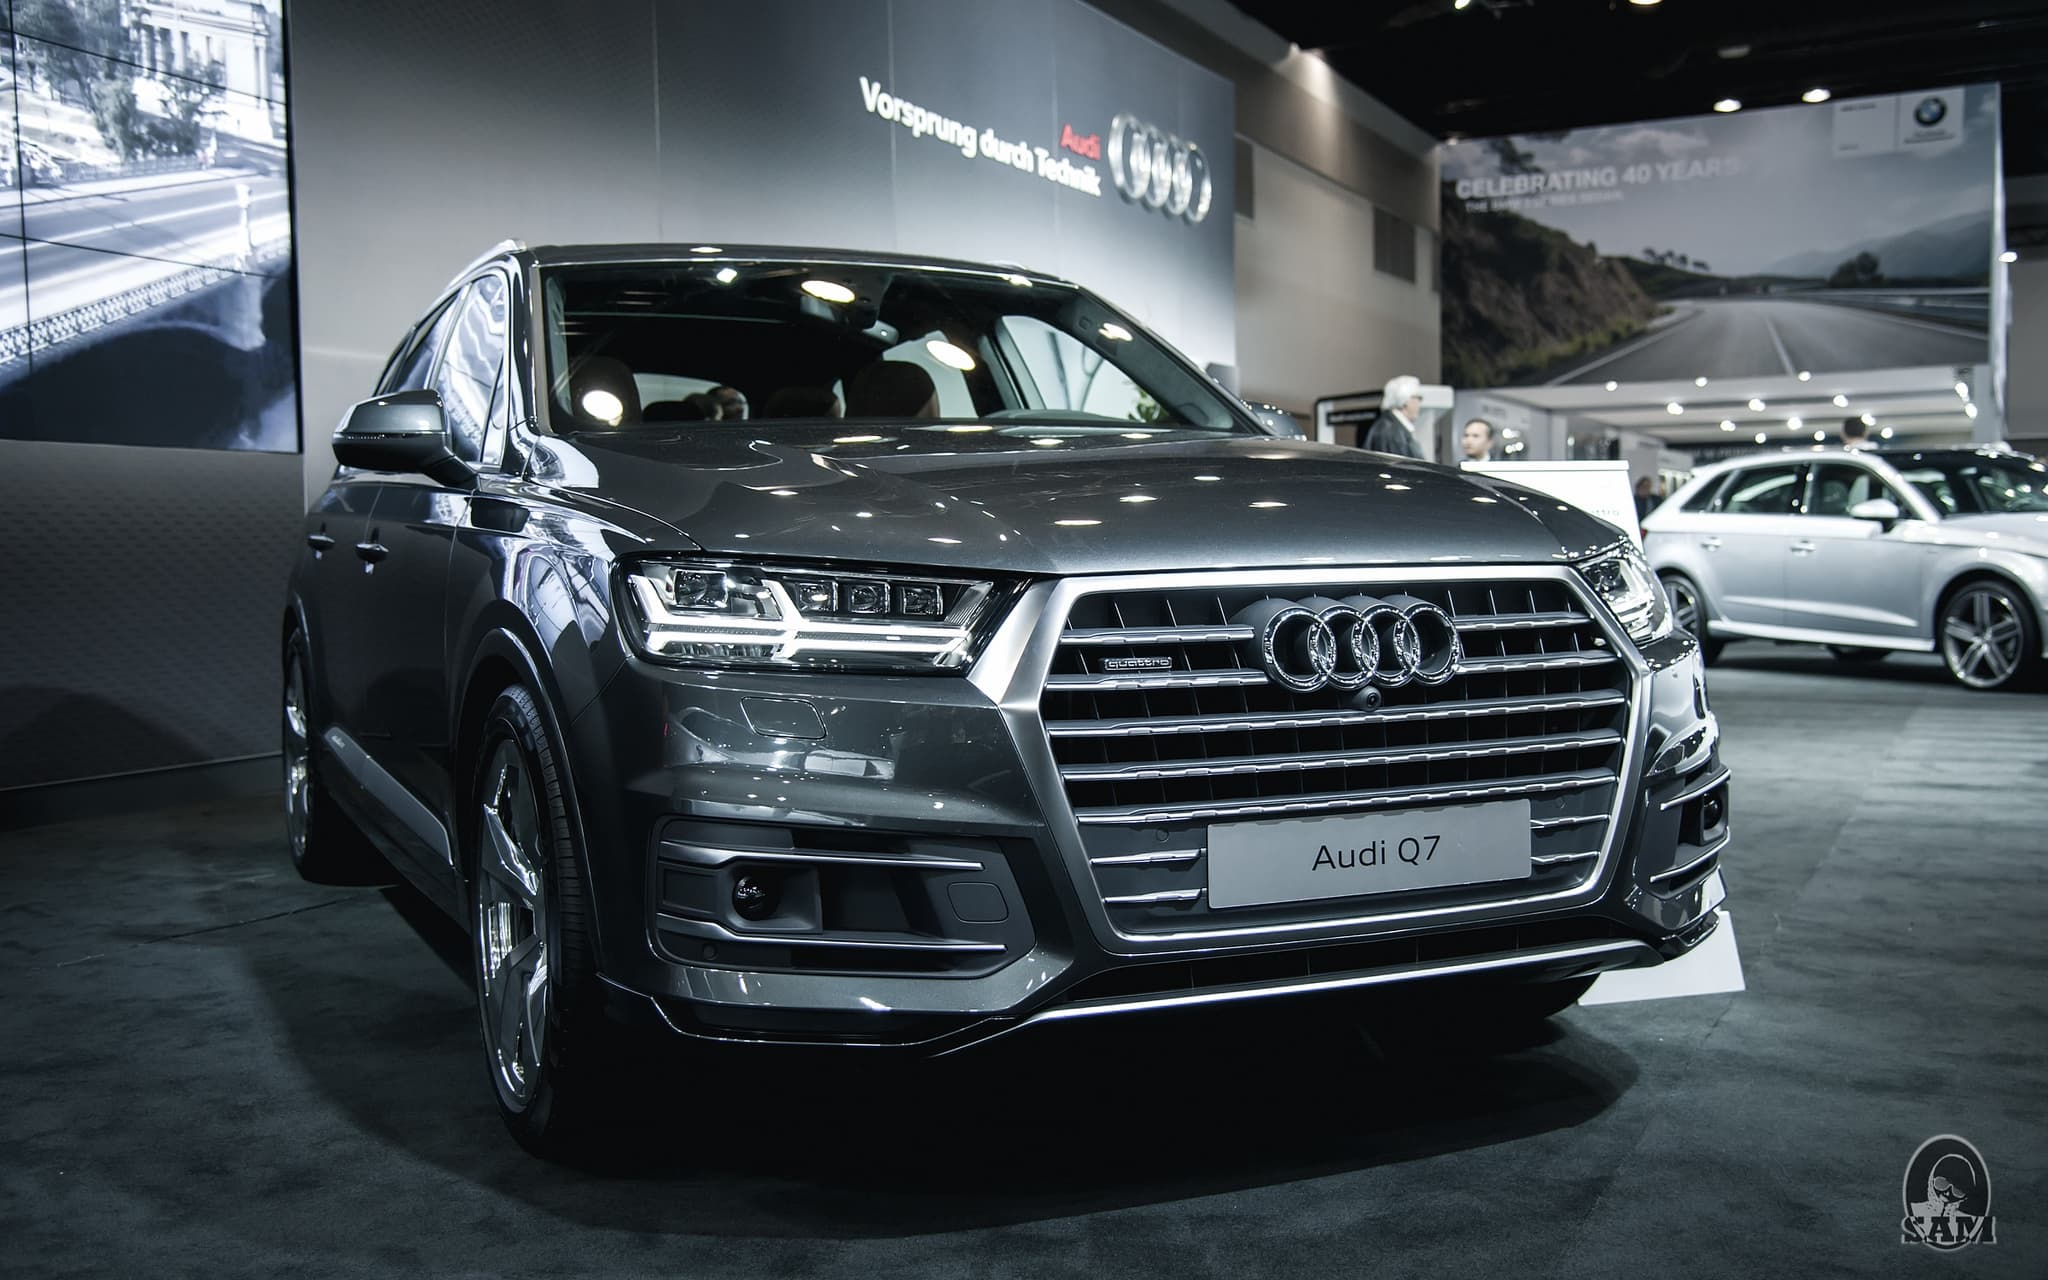 audi q7 2016 s line wallpapers high resolution 15. Black Bedroom Furniture Sets. Home Design Ideas